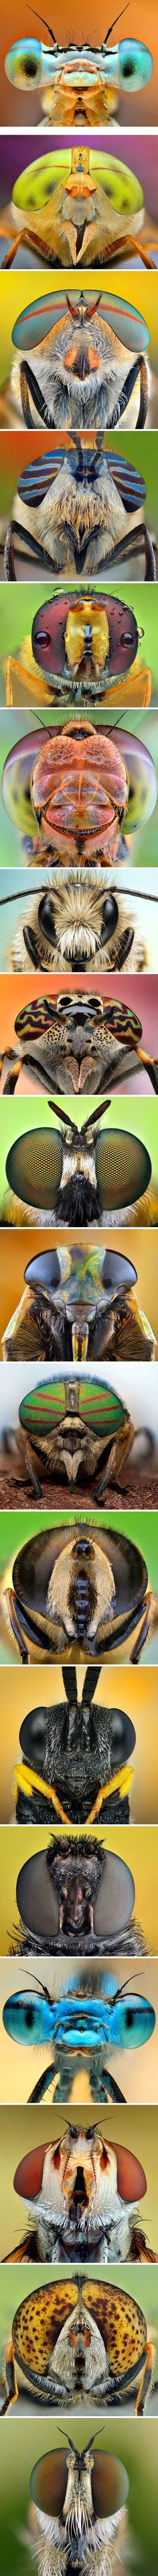 collection of fascinating facet eyes of dragonflies, bees and flies...Kids are SO fascinated by bugs! What a great project stater. Photographer Ireneusz Irass Waledzik #viqua